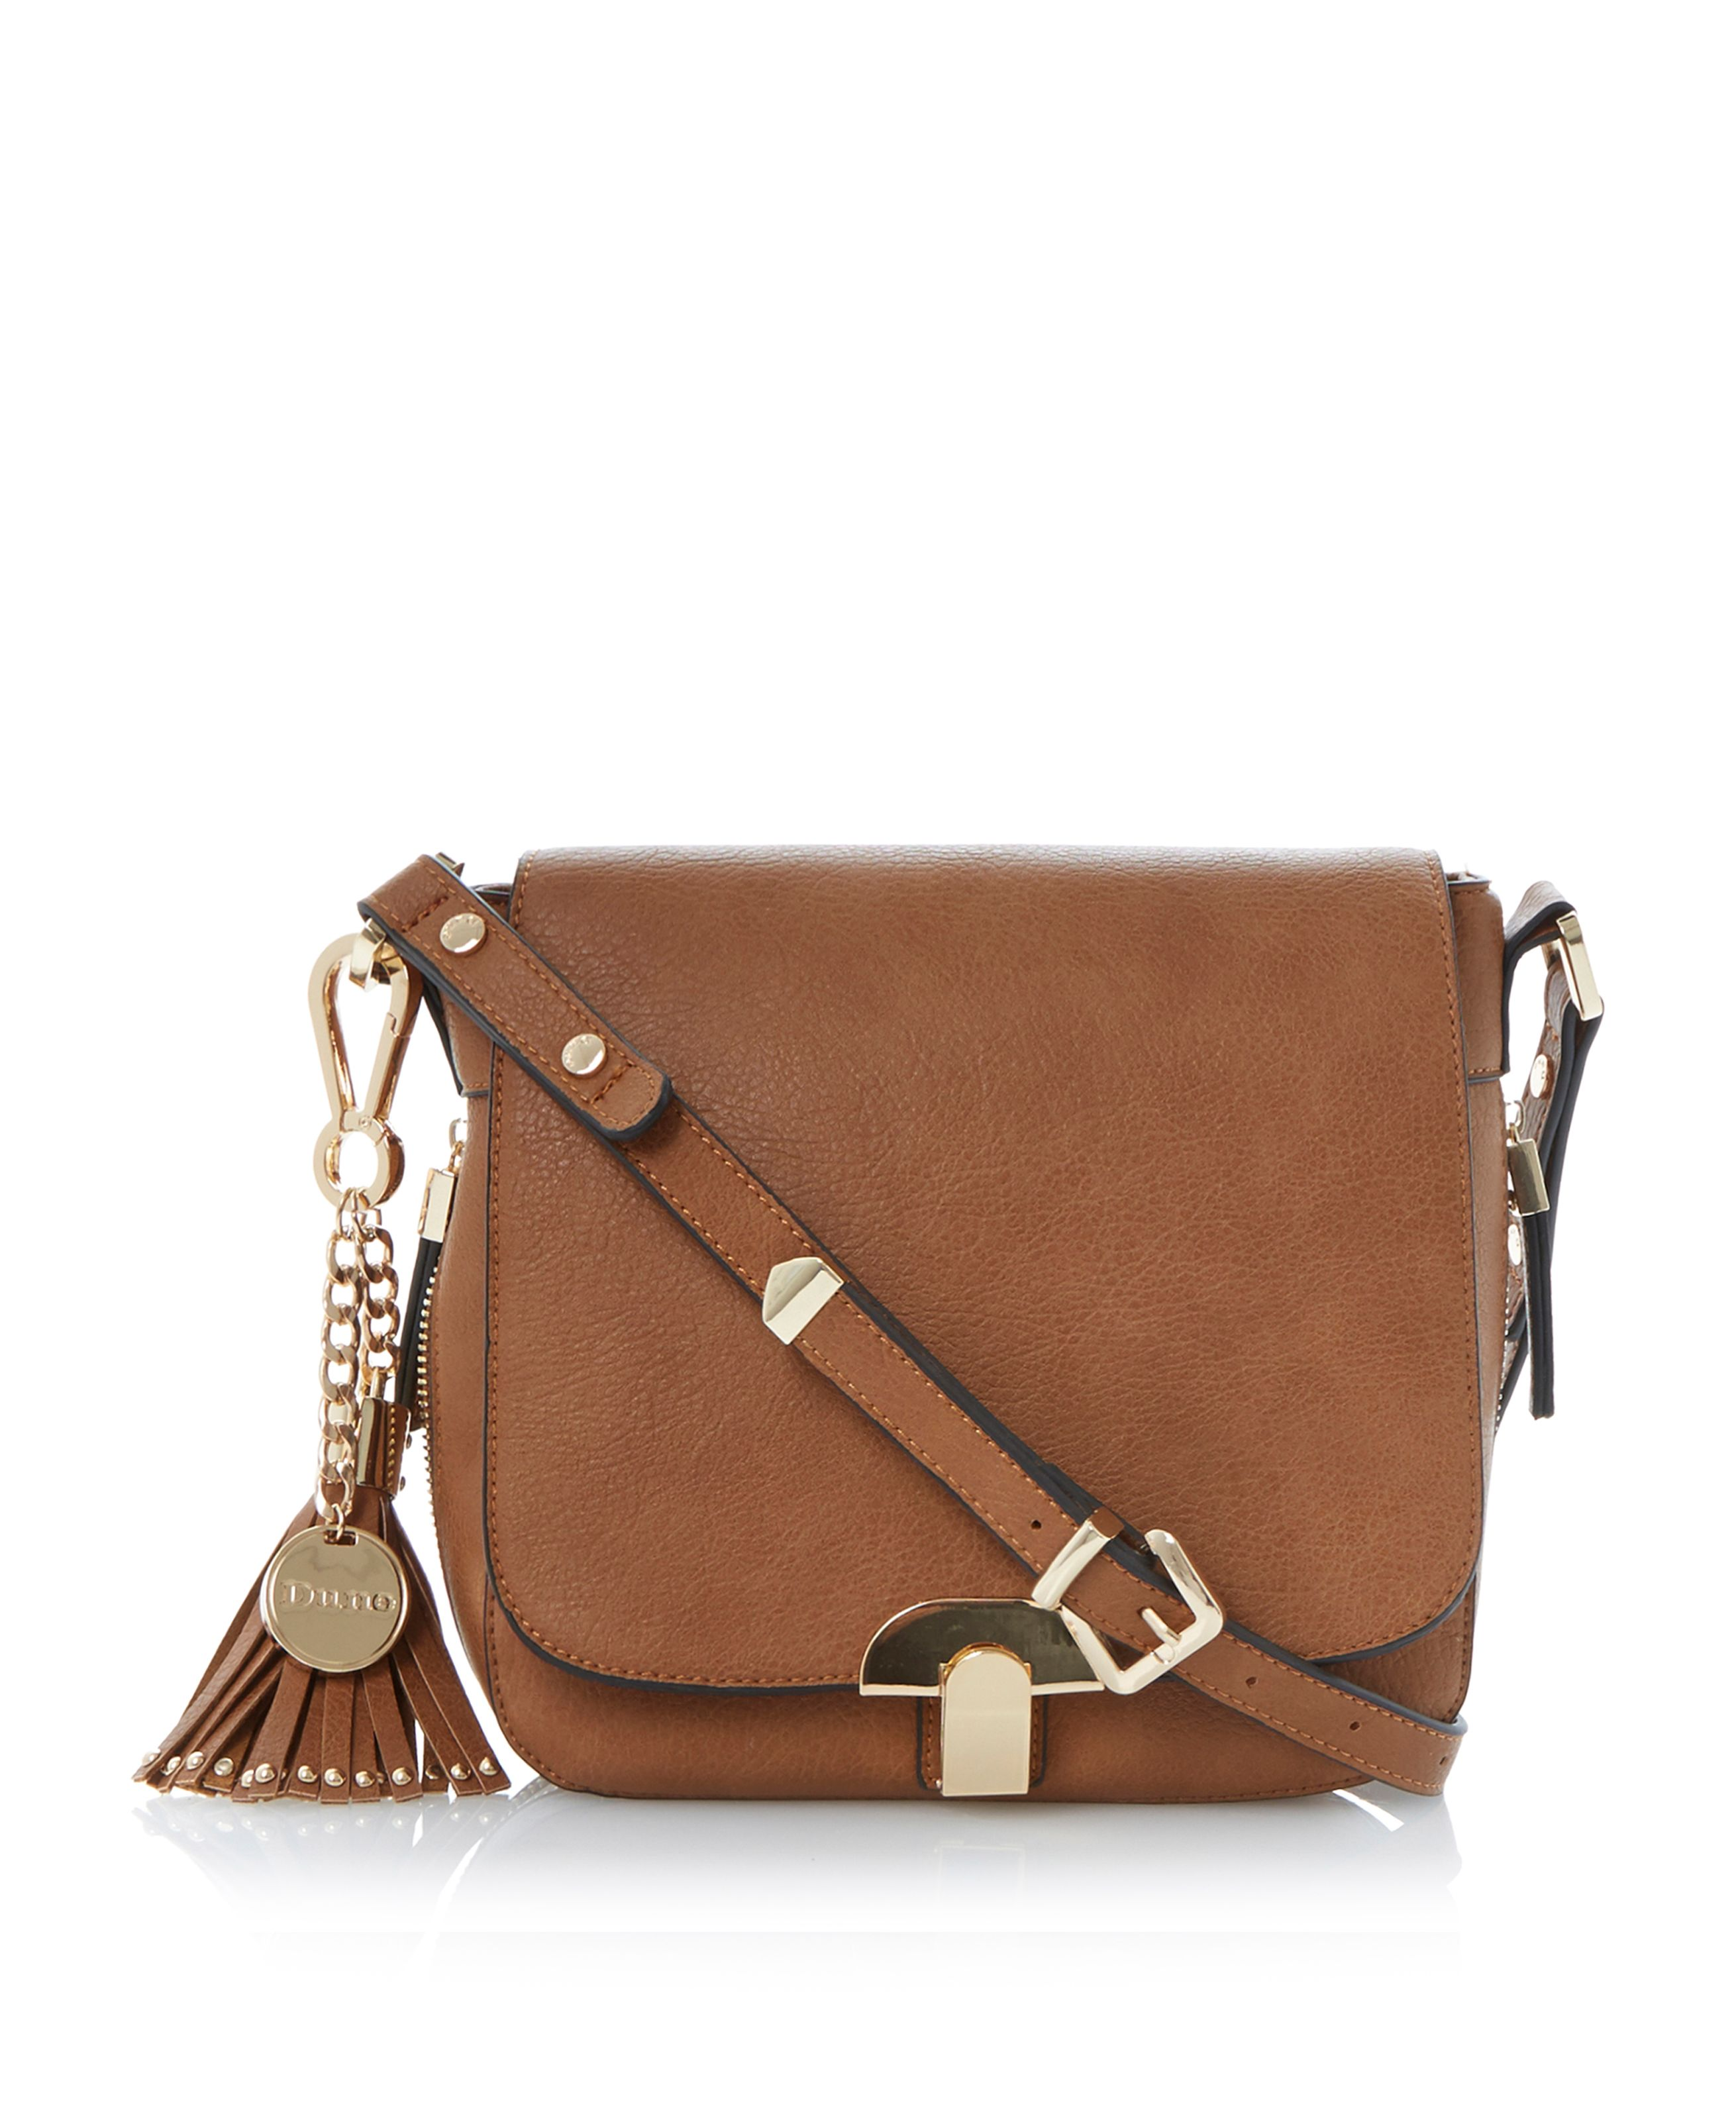 Dushroom tassel trim saddle bag